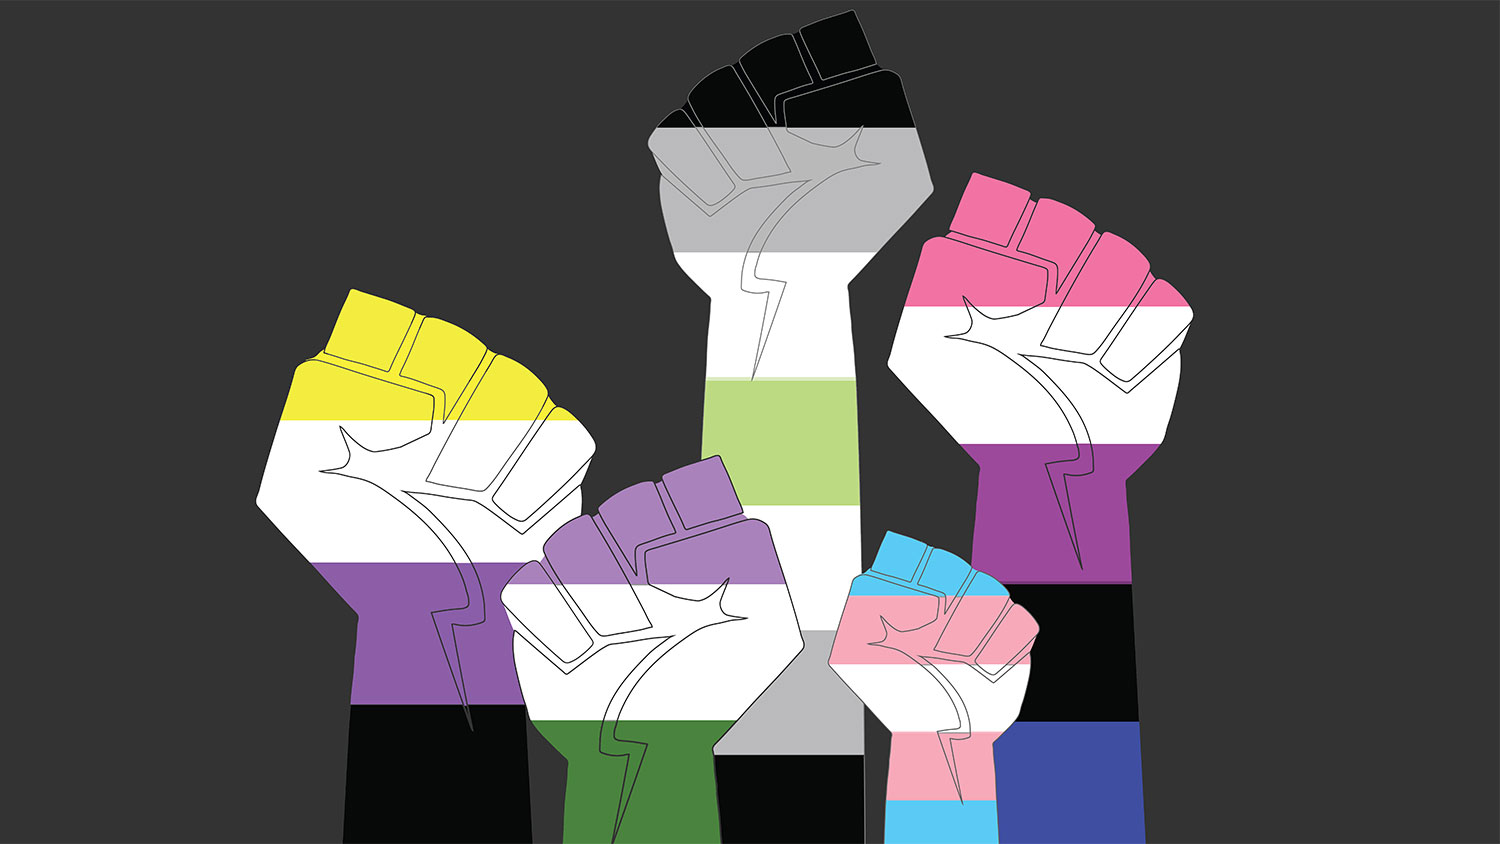 Fists drawn in the colors of nonbinary-gender flags